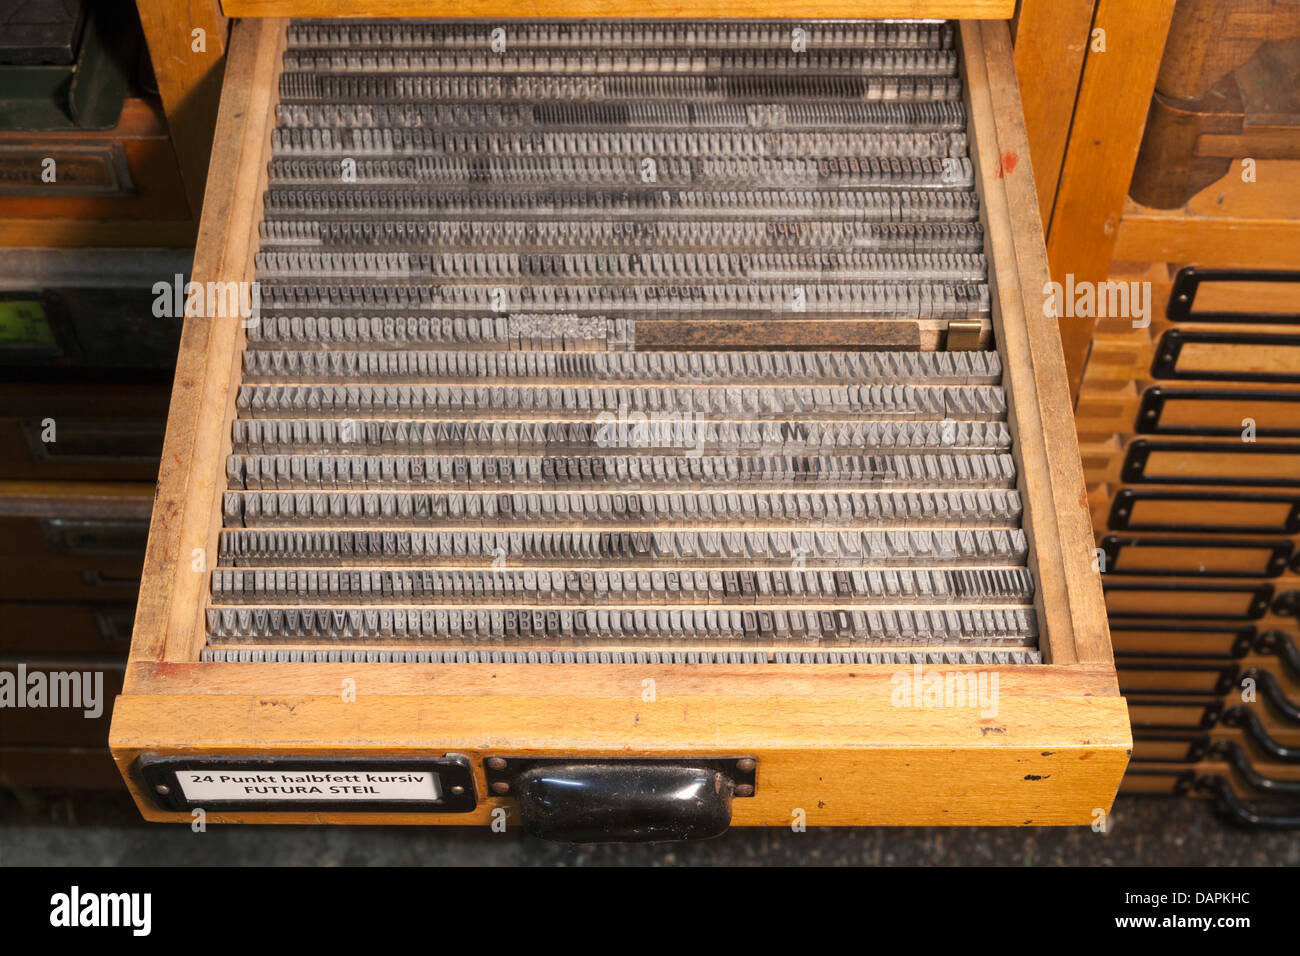 Germany, Bavaria, Detail of lead typesetting at traditional print shop - Stock Image